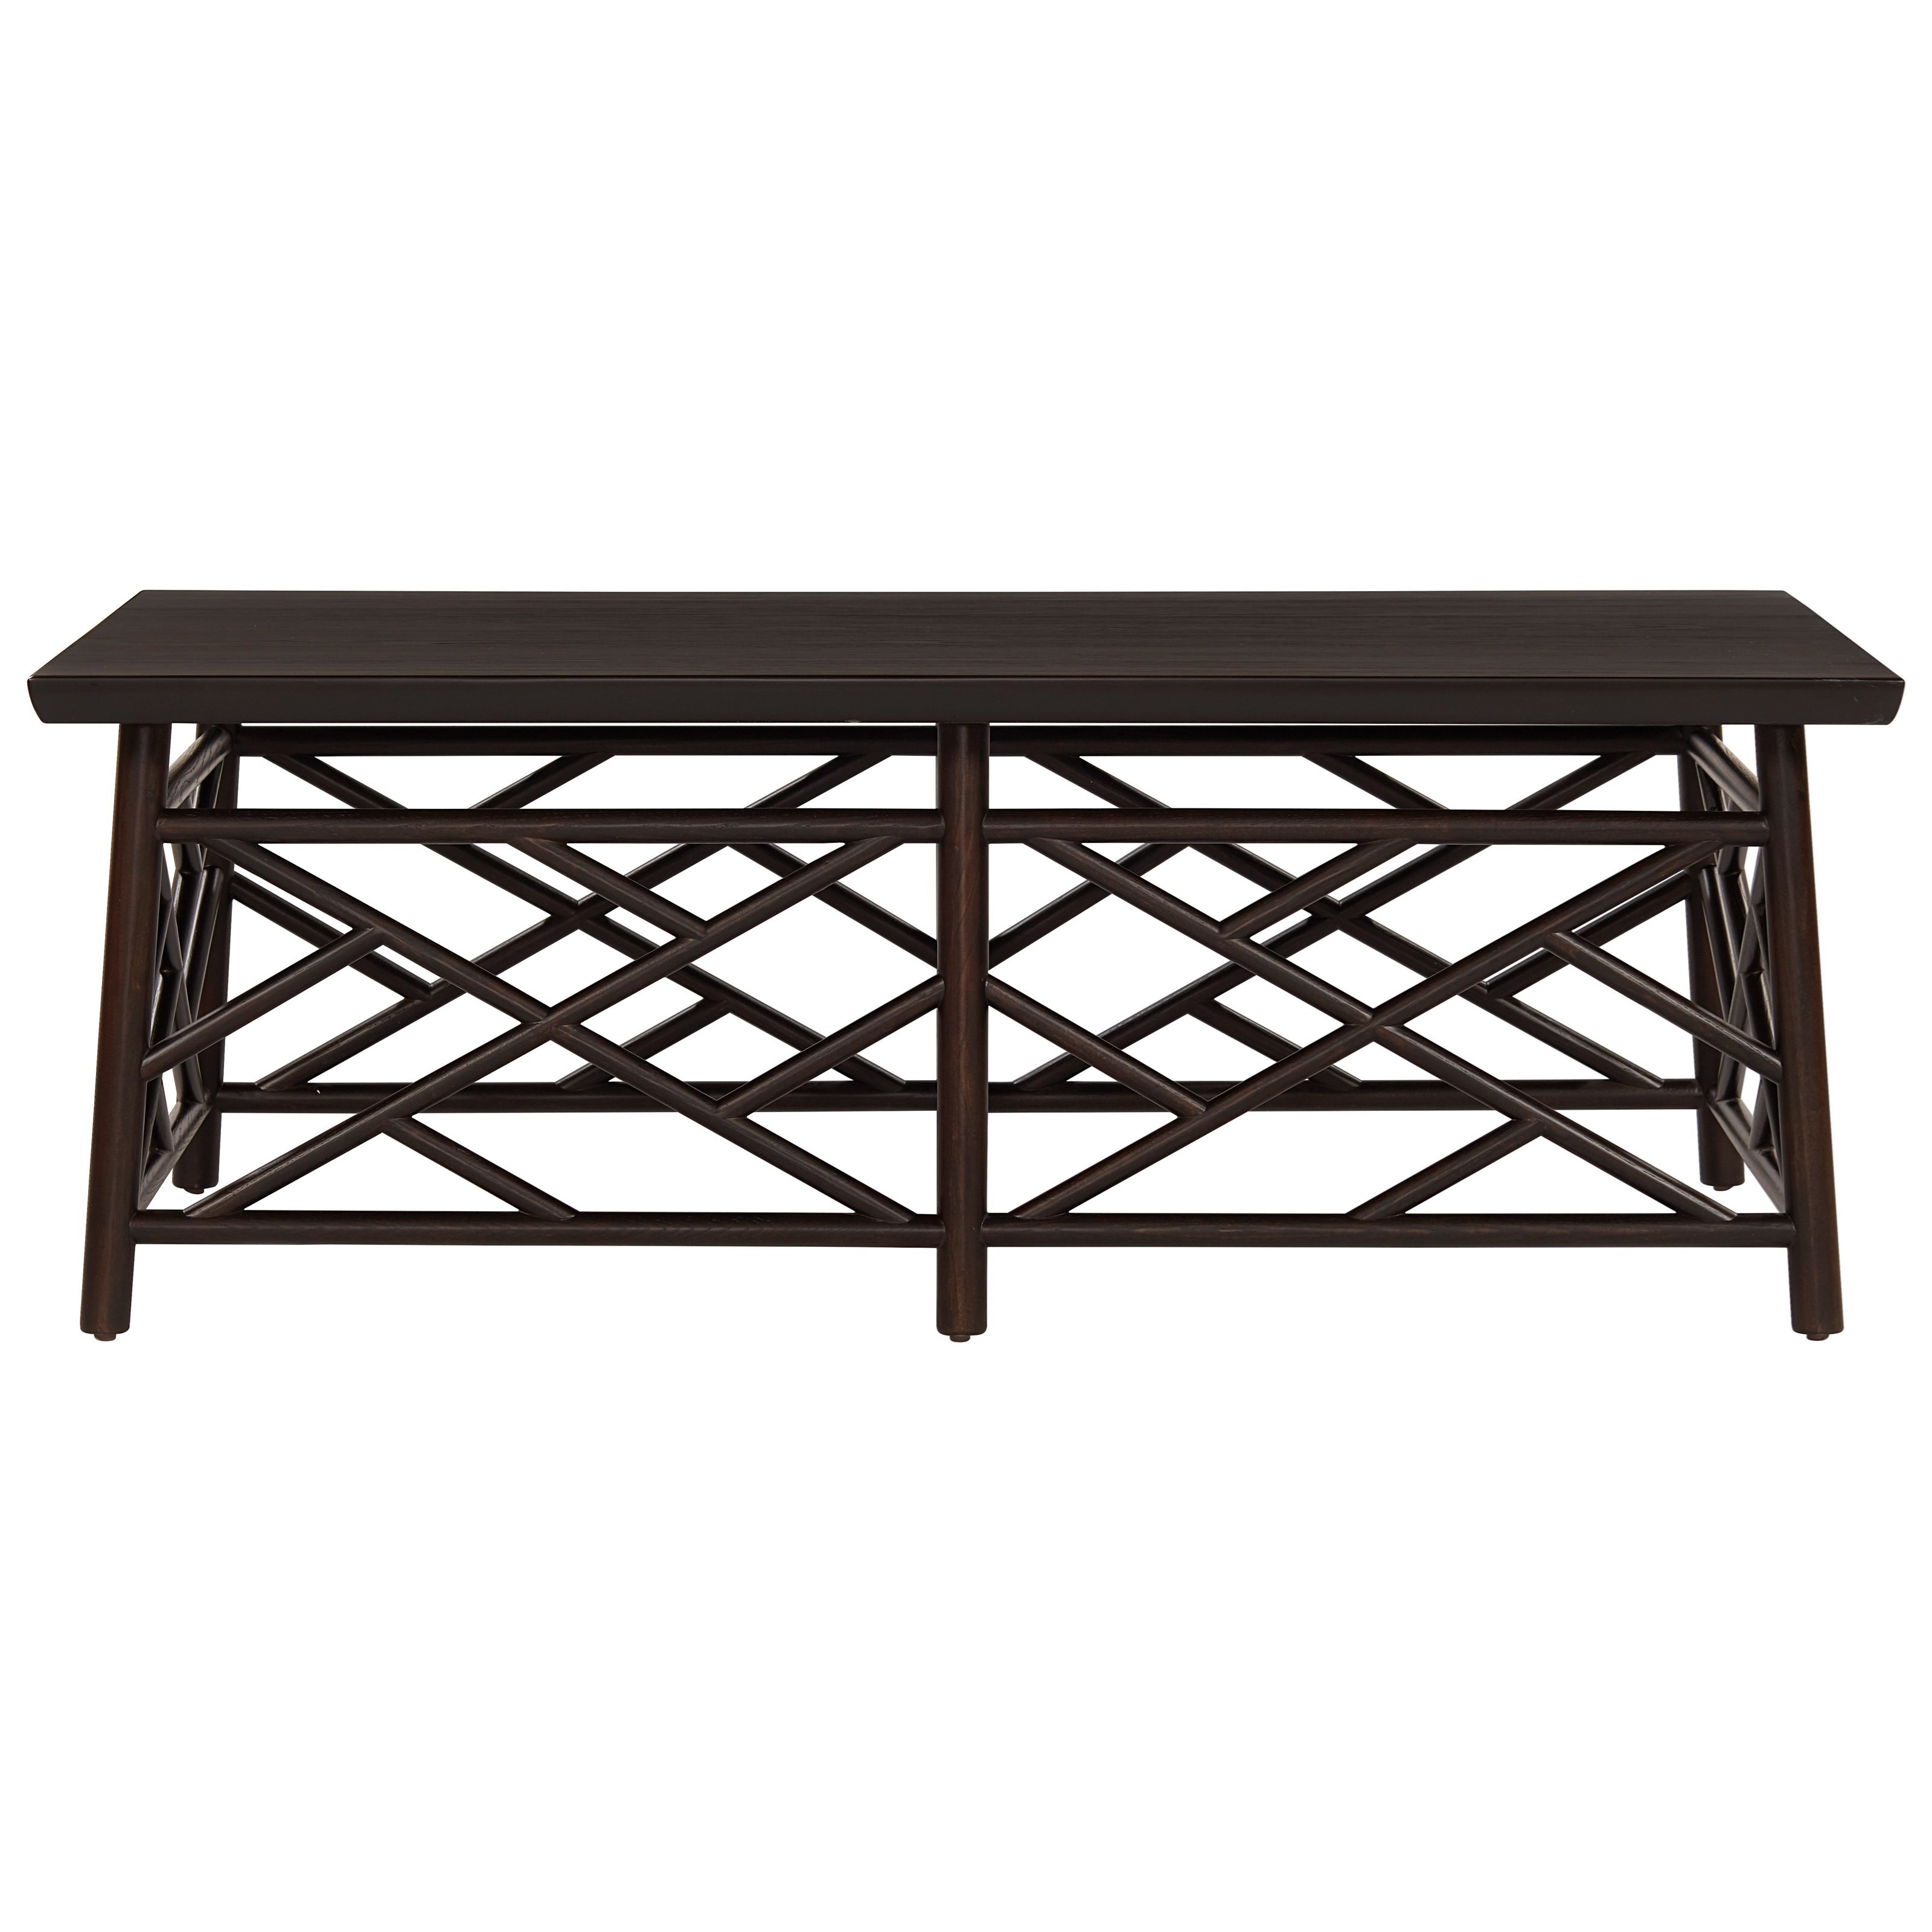 Coastal Living Home - Getaway Cocktail Table by Universal at Baer's Furniture